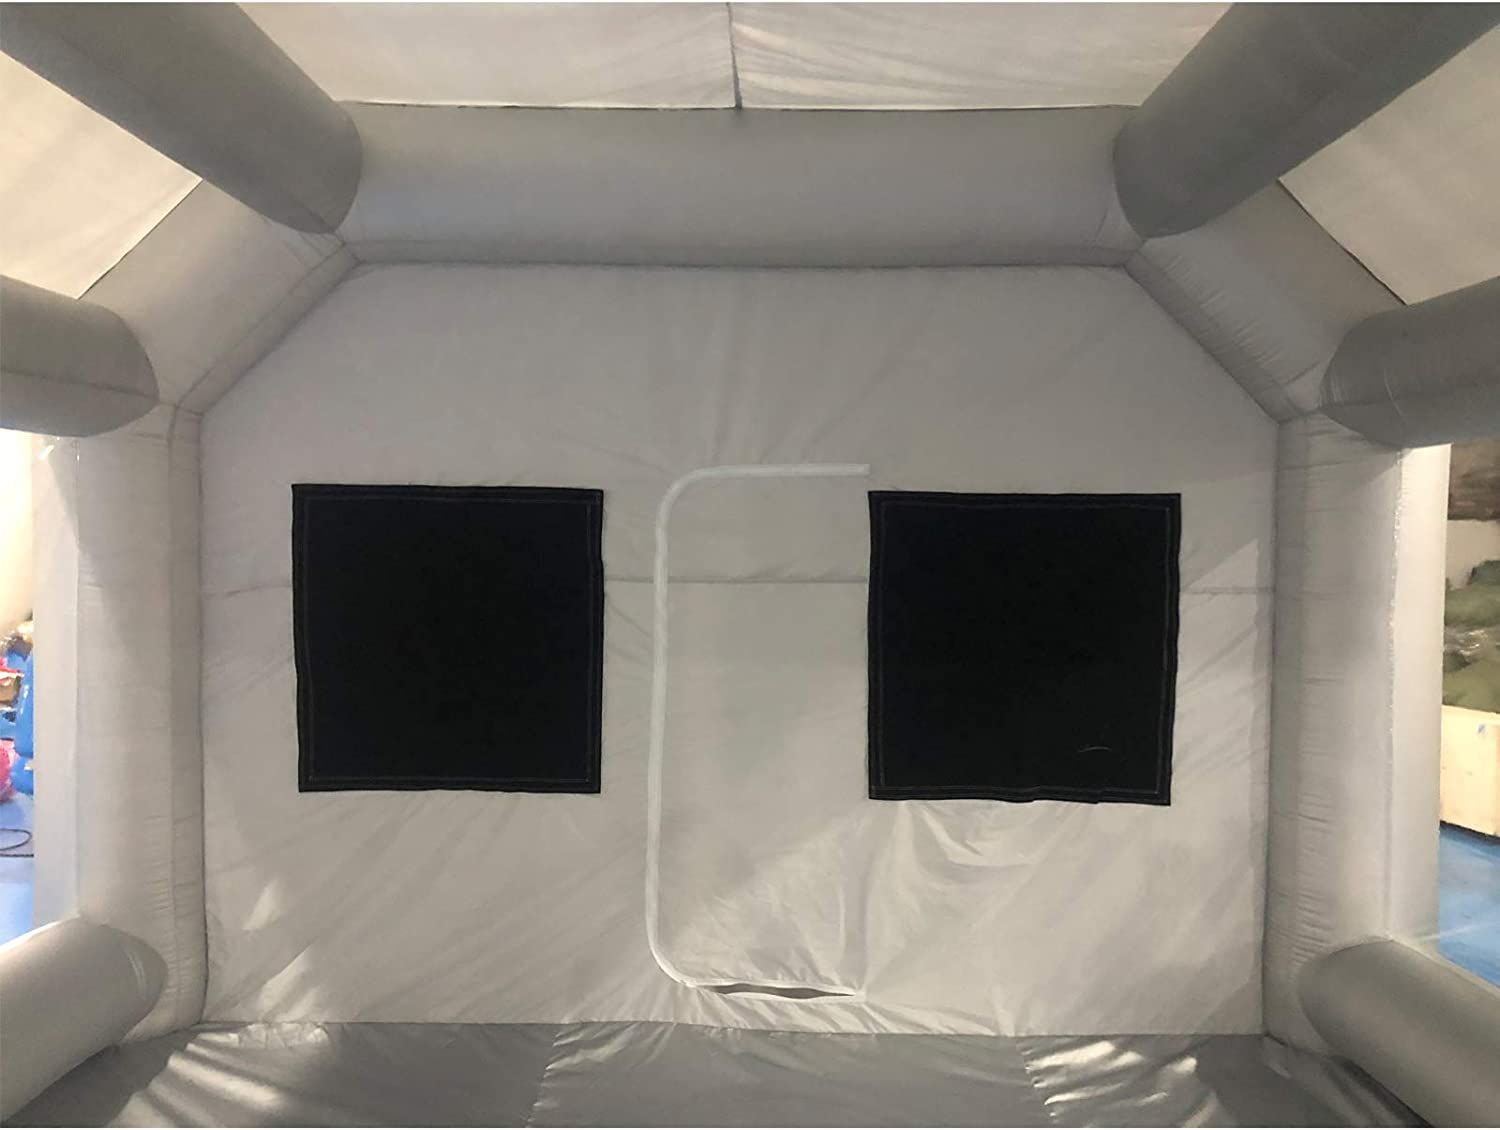 Silver SAYOK Inflatable Paint Booth 33x16.4x11.5ft with 2 Blowers Inflatable Spray Booth with Filter System Portable Car Paint Booth for Car//Door Parking Tent Workstation